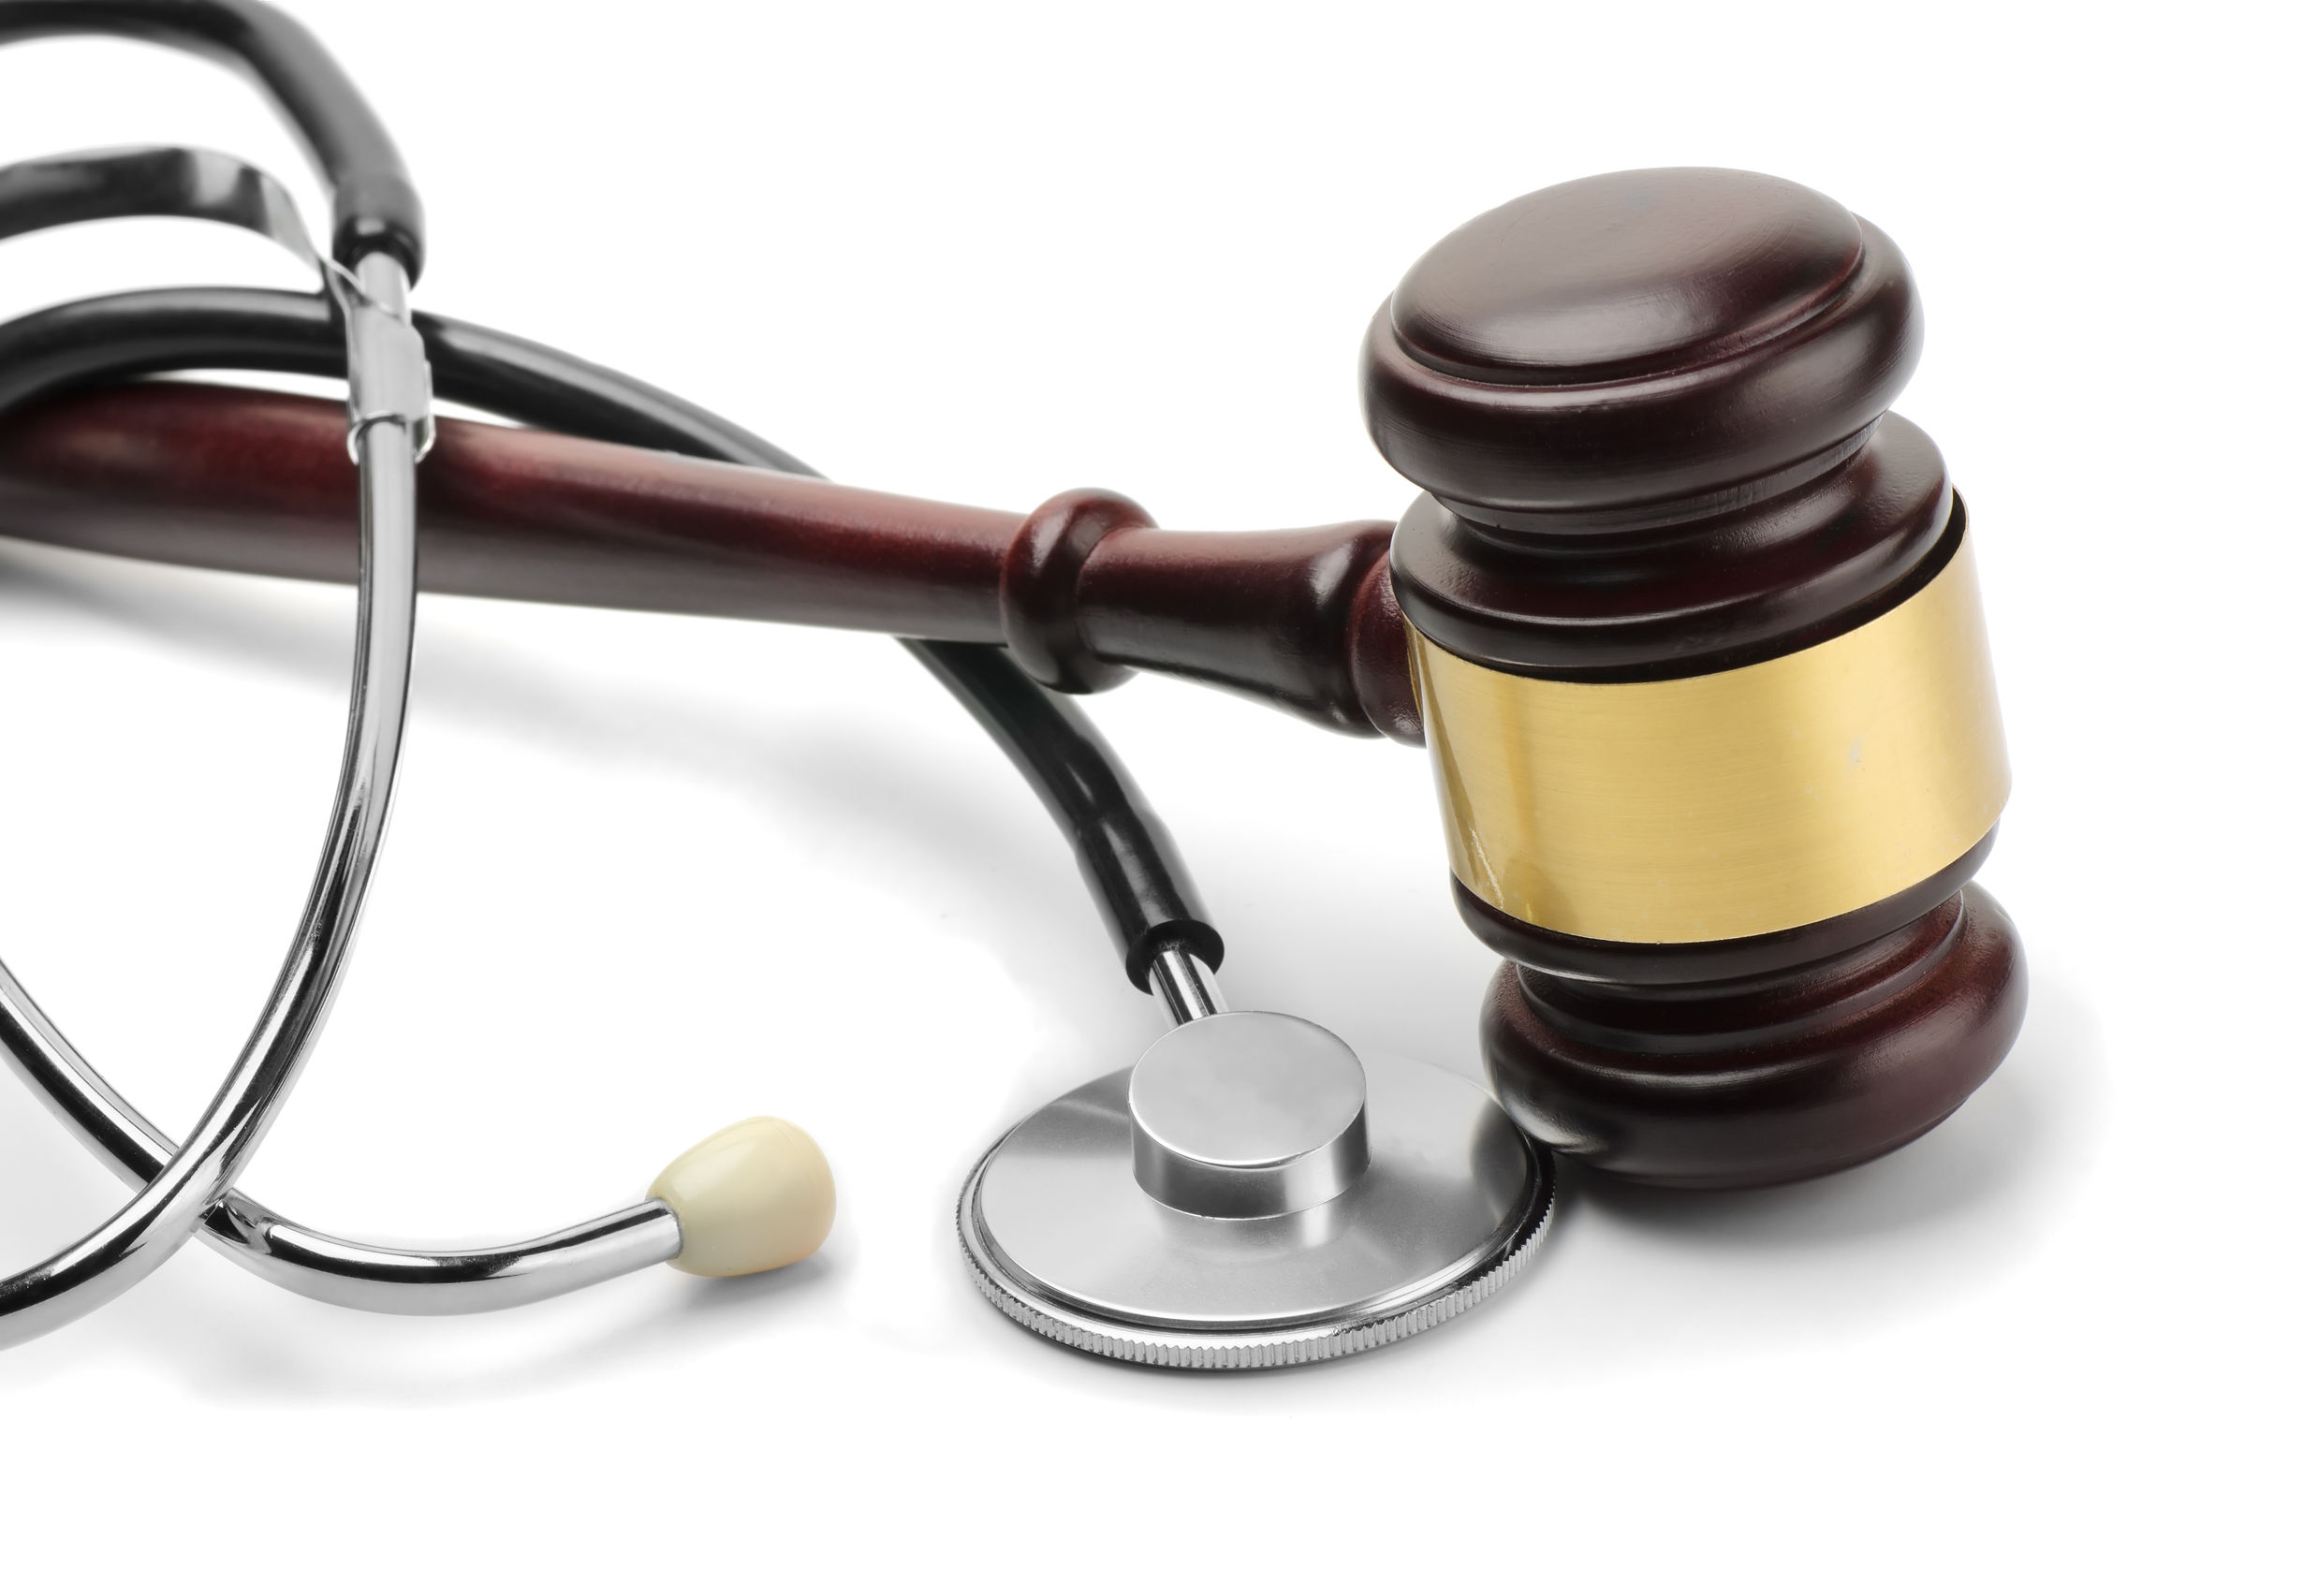 MEDICAL MALPRACTICE INVESTIGATIONS